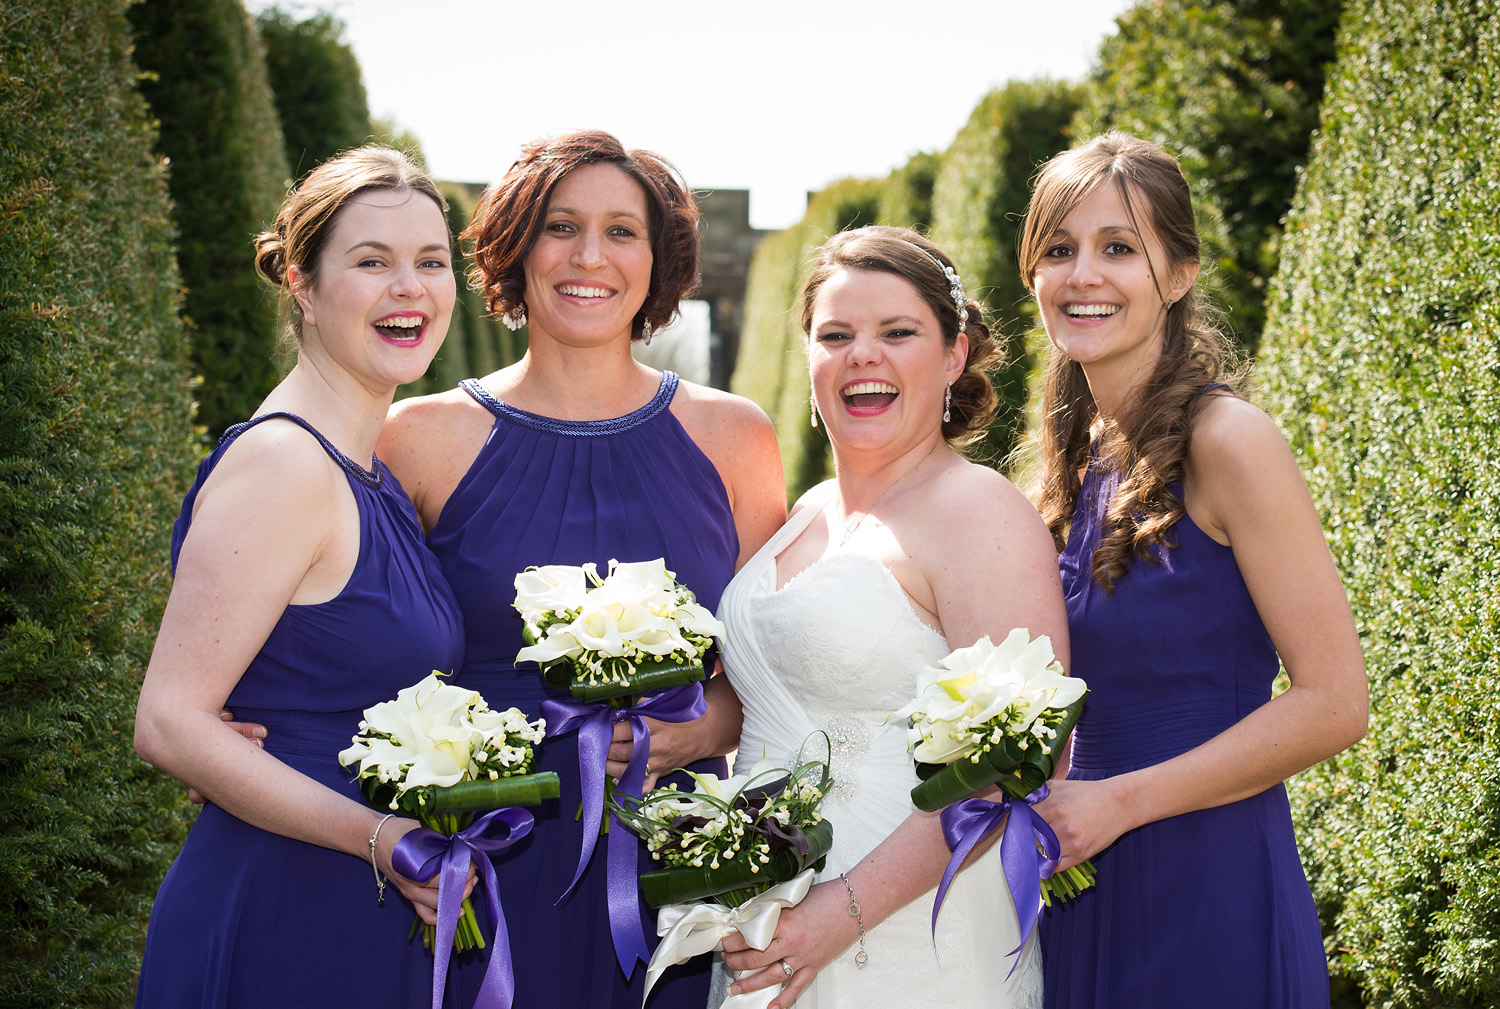 Wedding photography in the gardens at Hoghton Tower